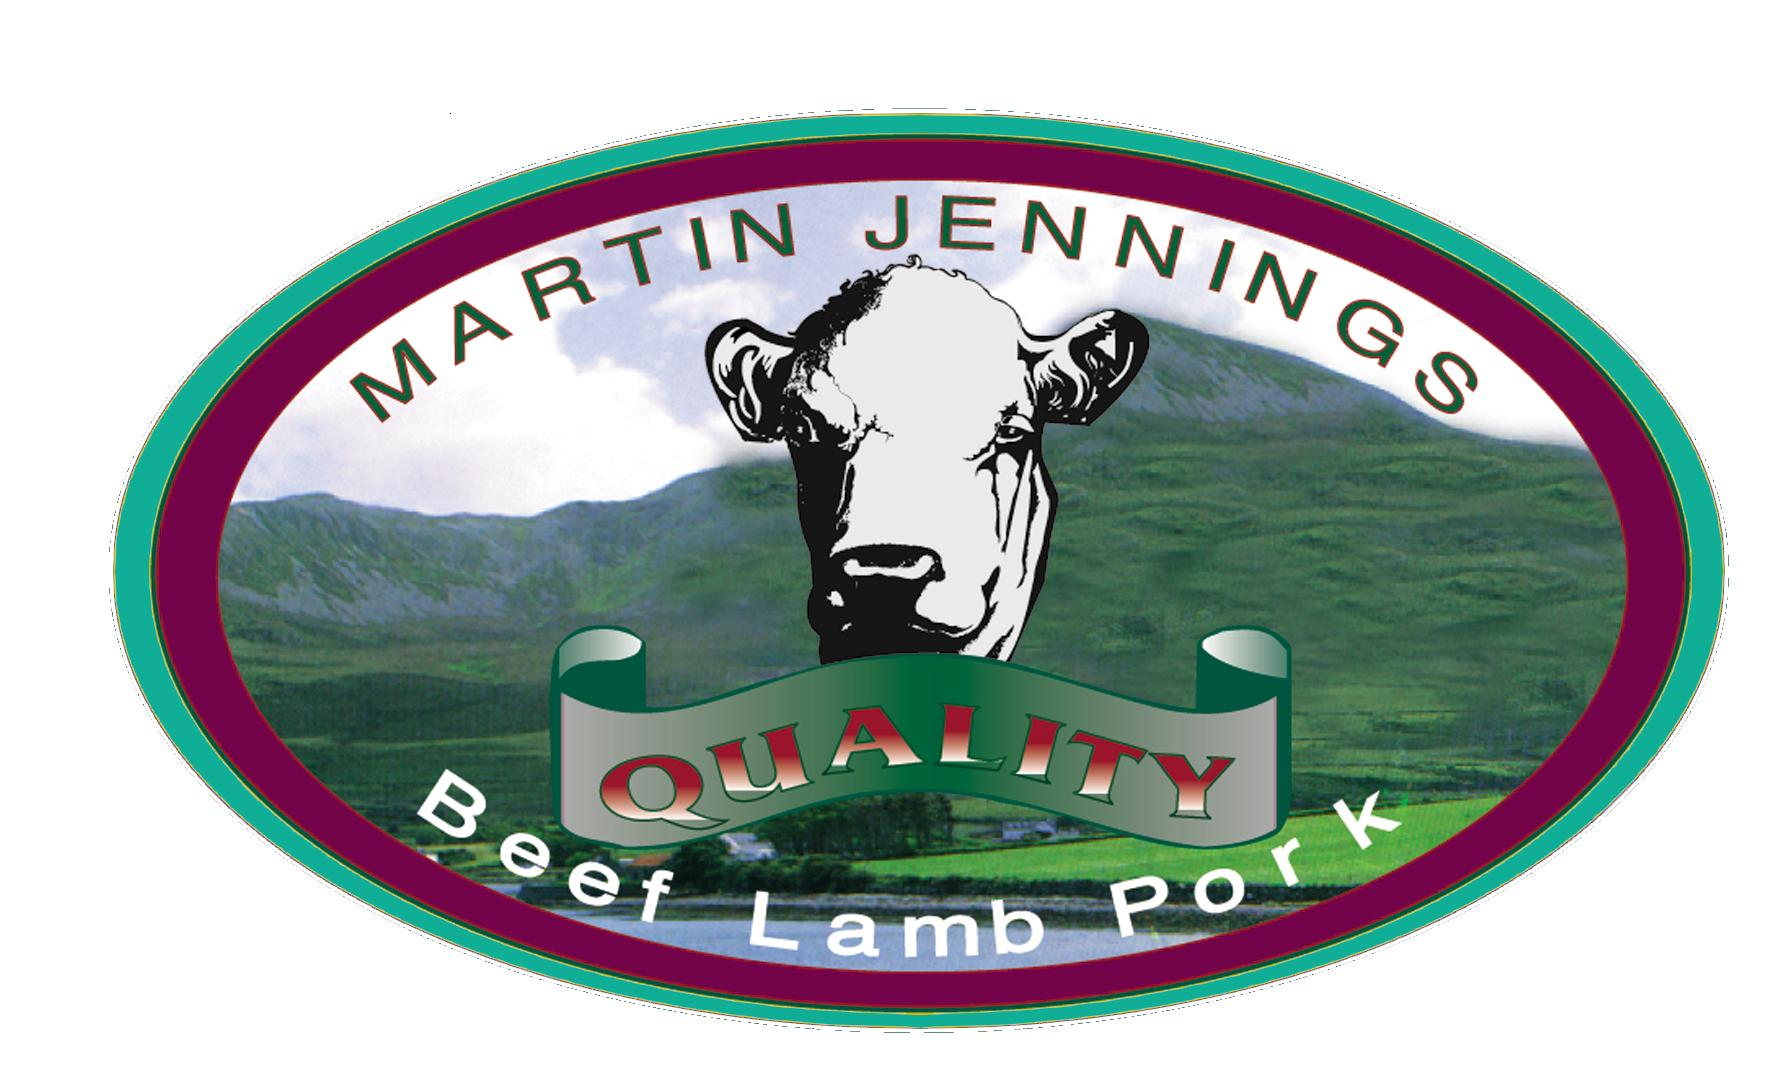 Martin Jennings Wholesale Limited logotype